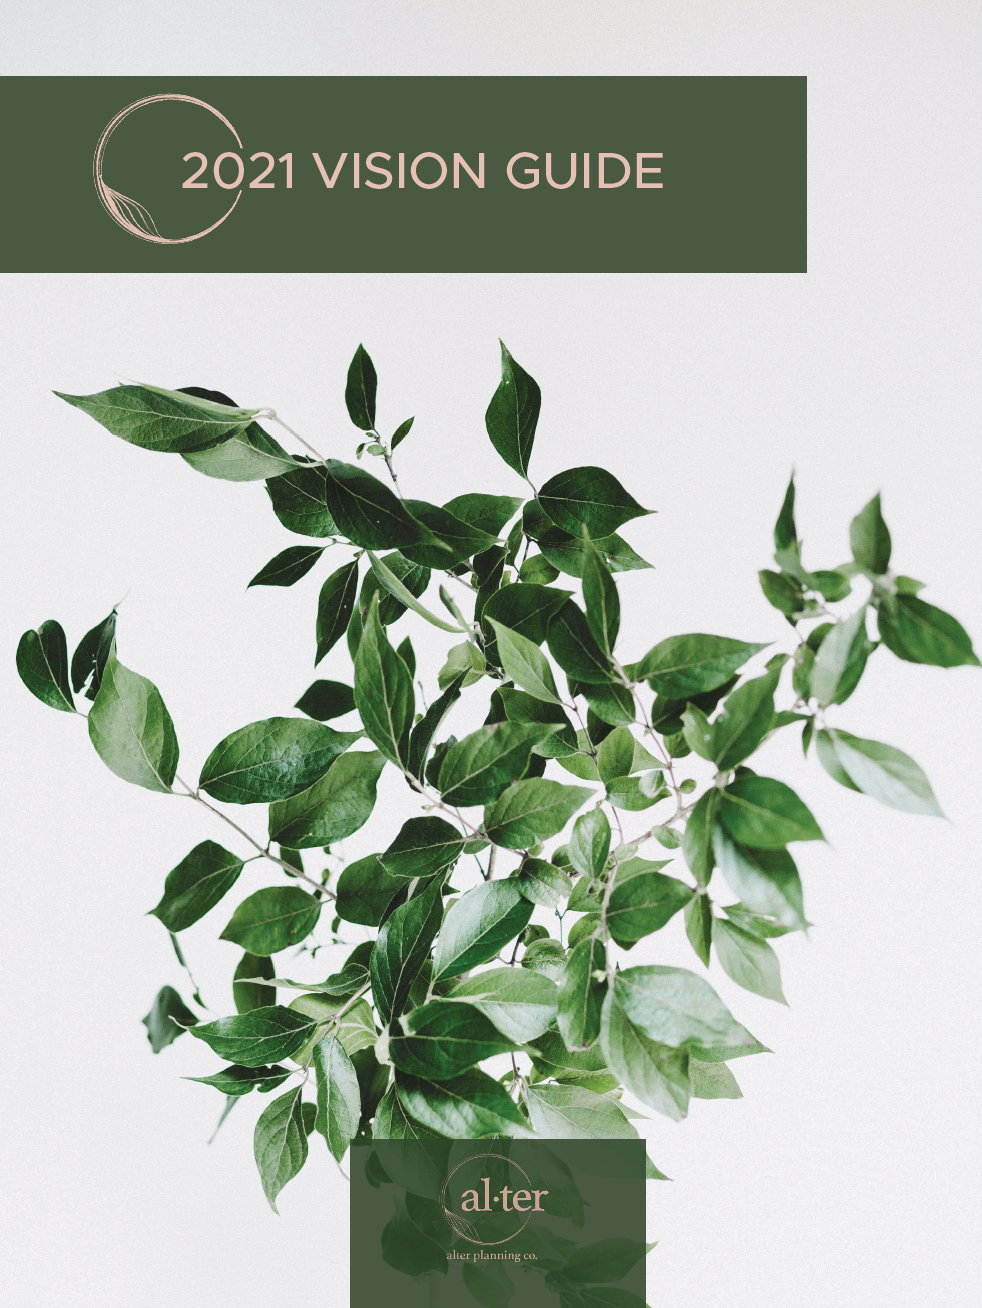 2021 Vision Goal Guide